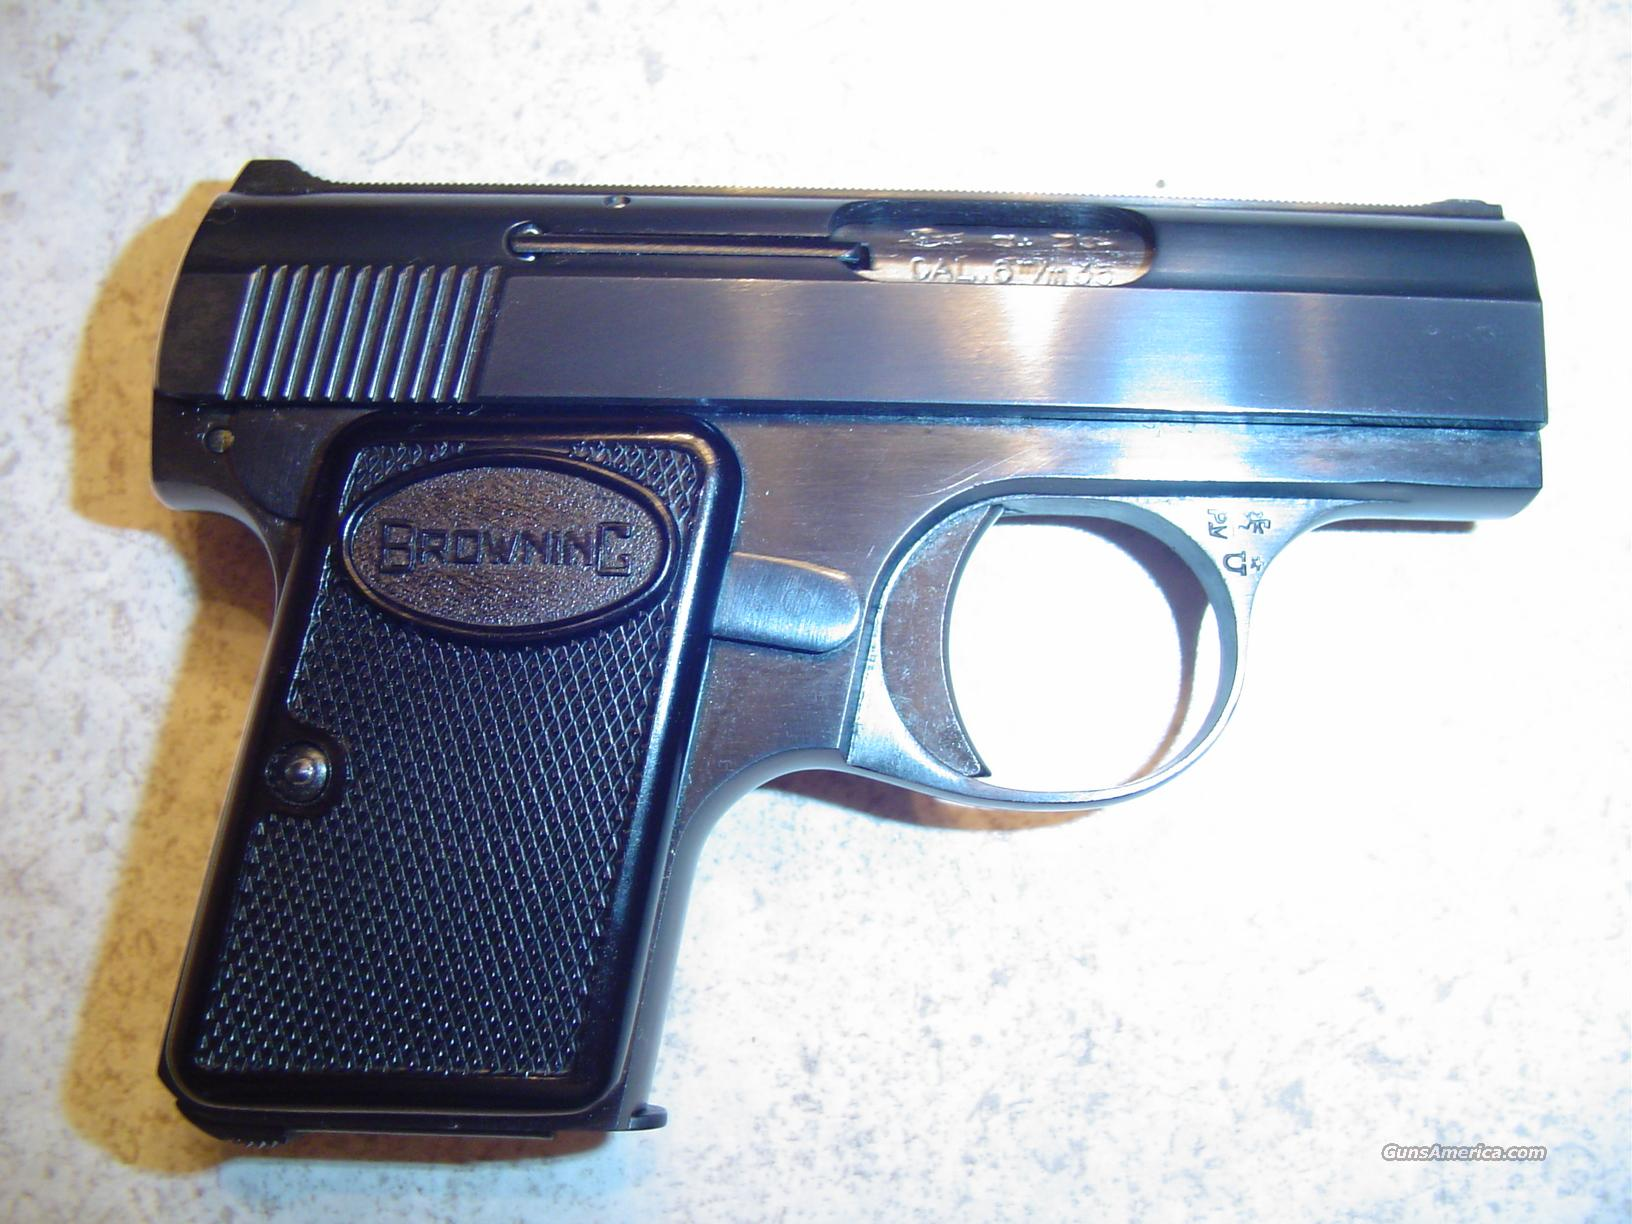 VERY NICE BLUED BABY BROWING!  Guns > Pistols > Browning Pistols > Baby Browning